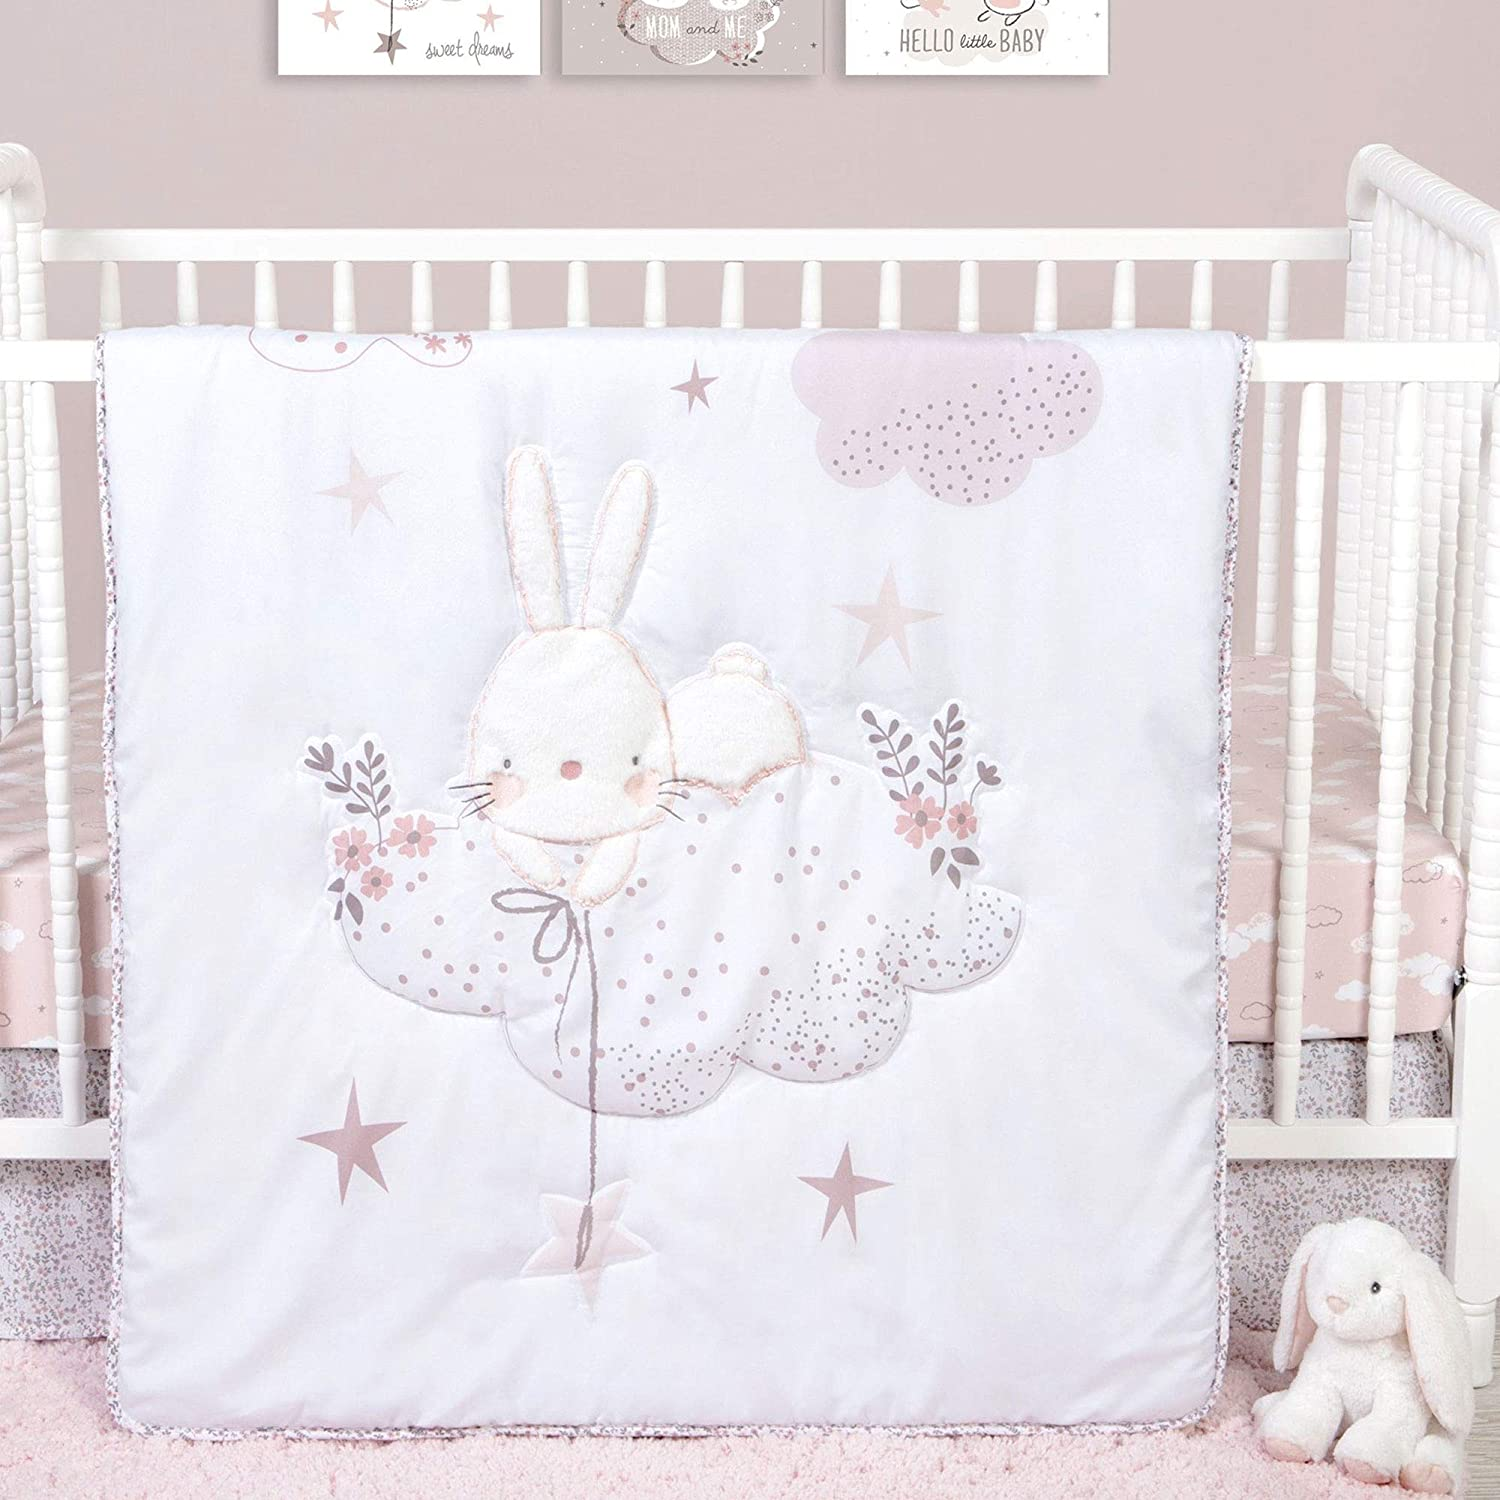 Popular popular Cottontail Cloud Bunny Rabbit and Theme 4 Microfiber Factory outlet Celestial P